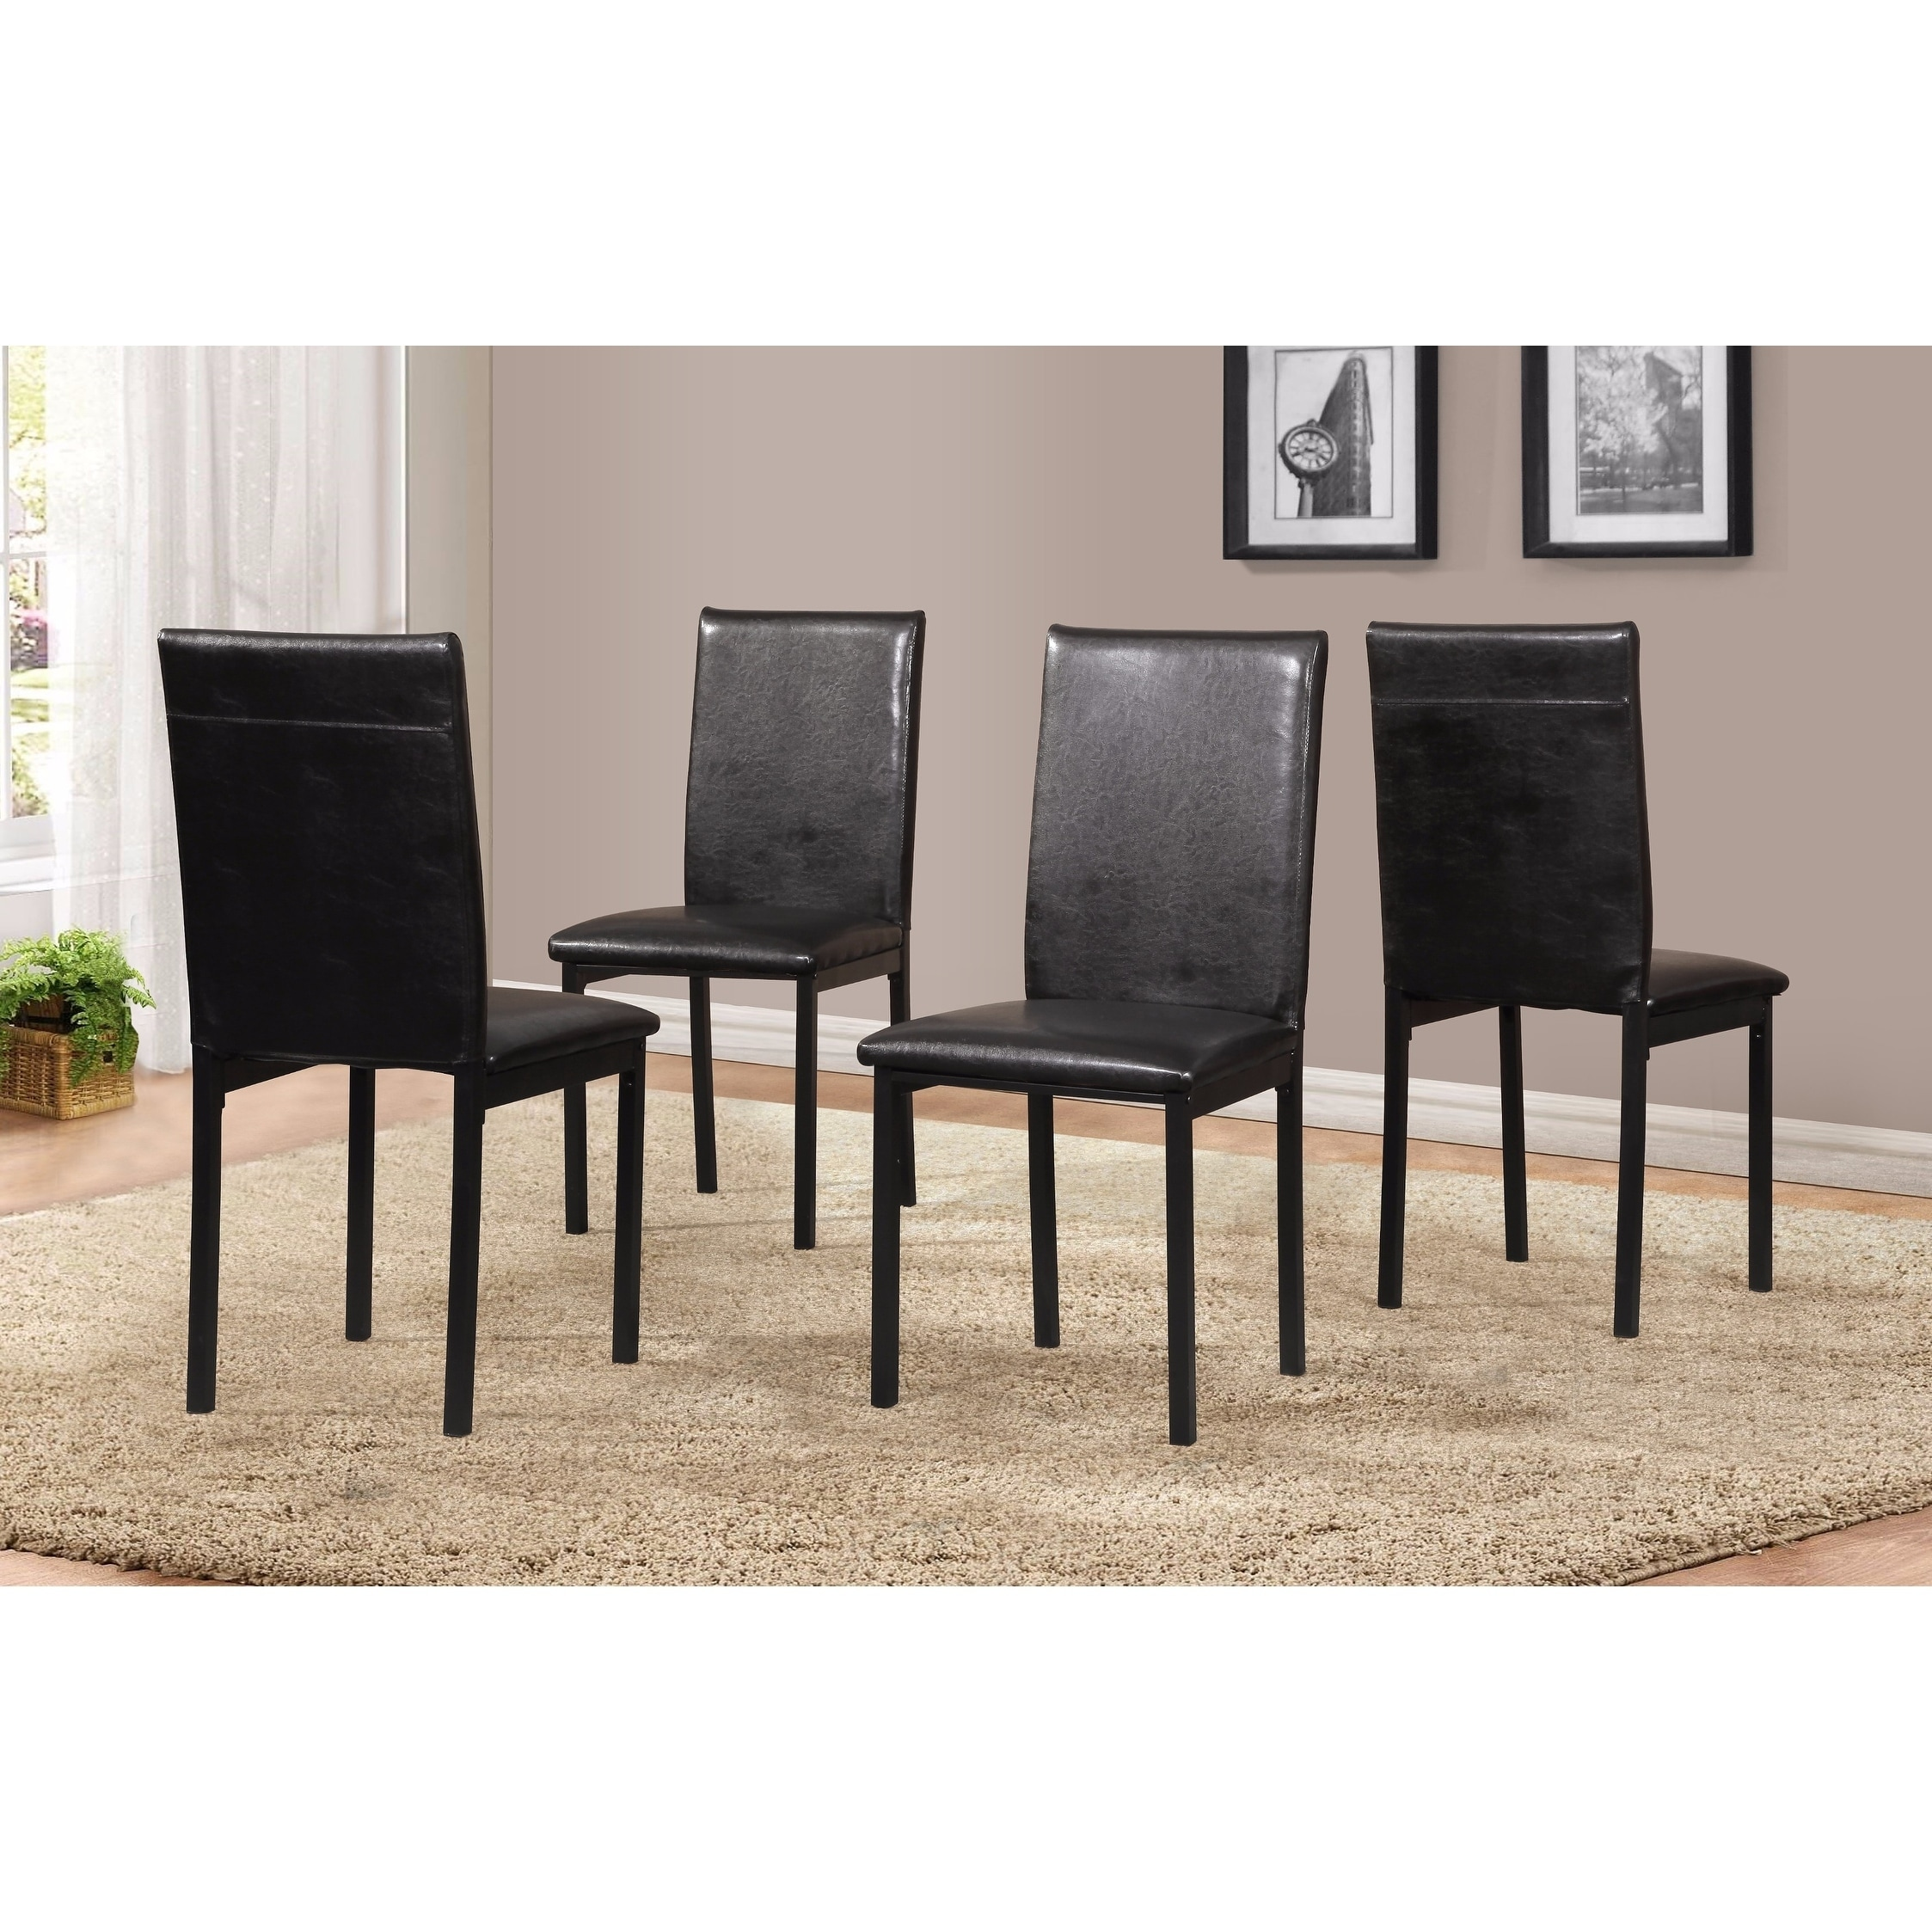 Noyes Faux Leather Seat Metal Frame Black Dining Chairs Set Of 4 Free Shipping Today 18657016